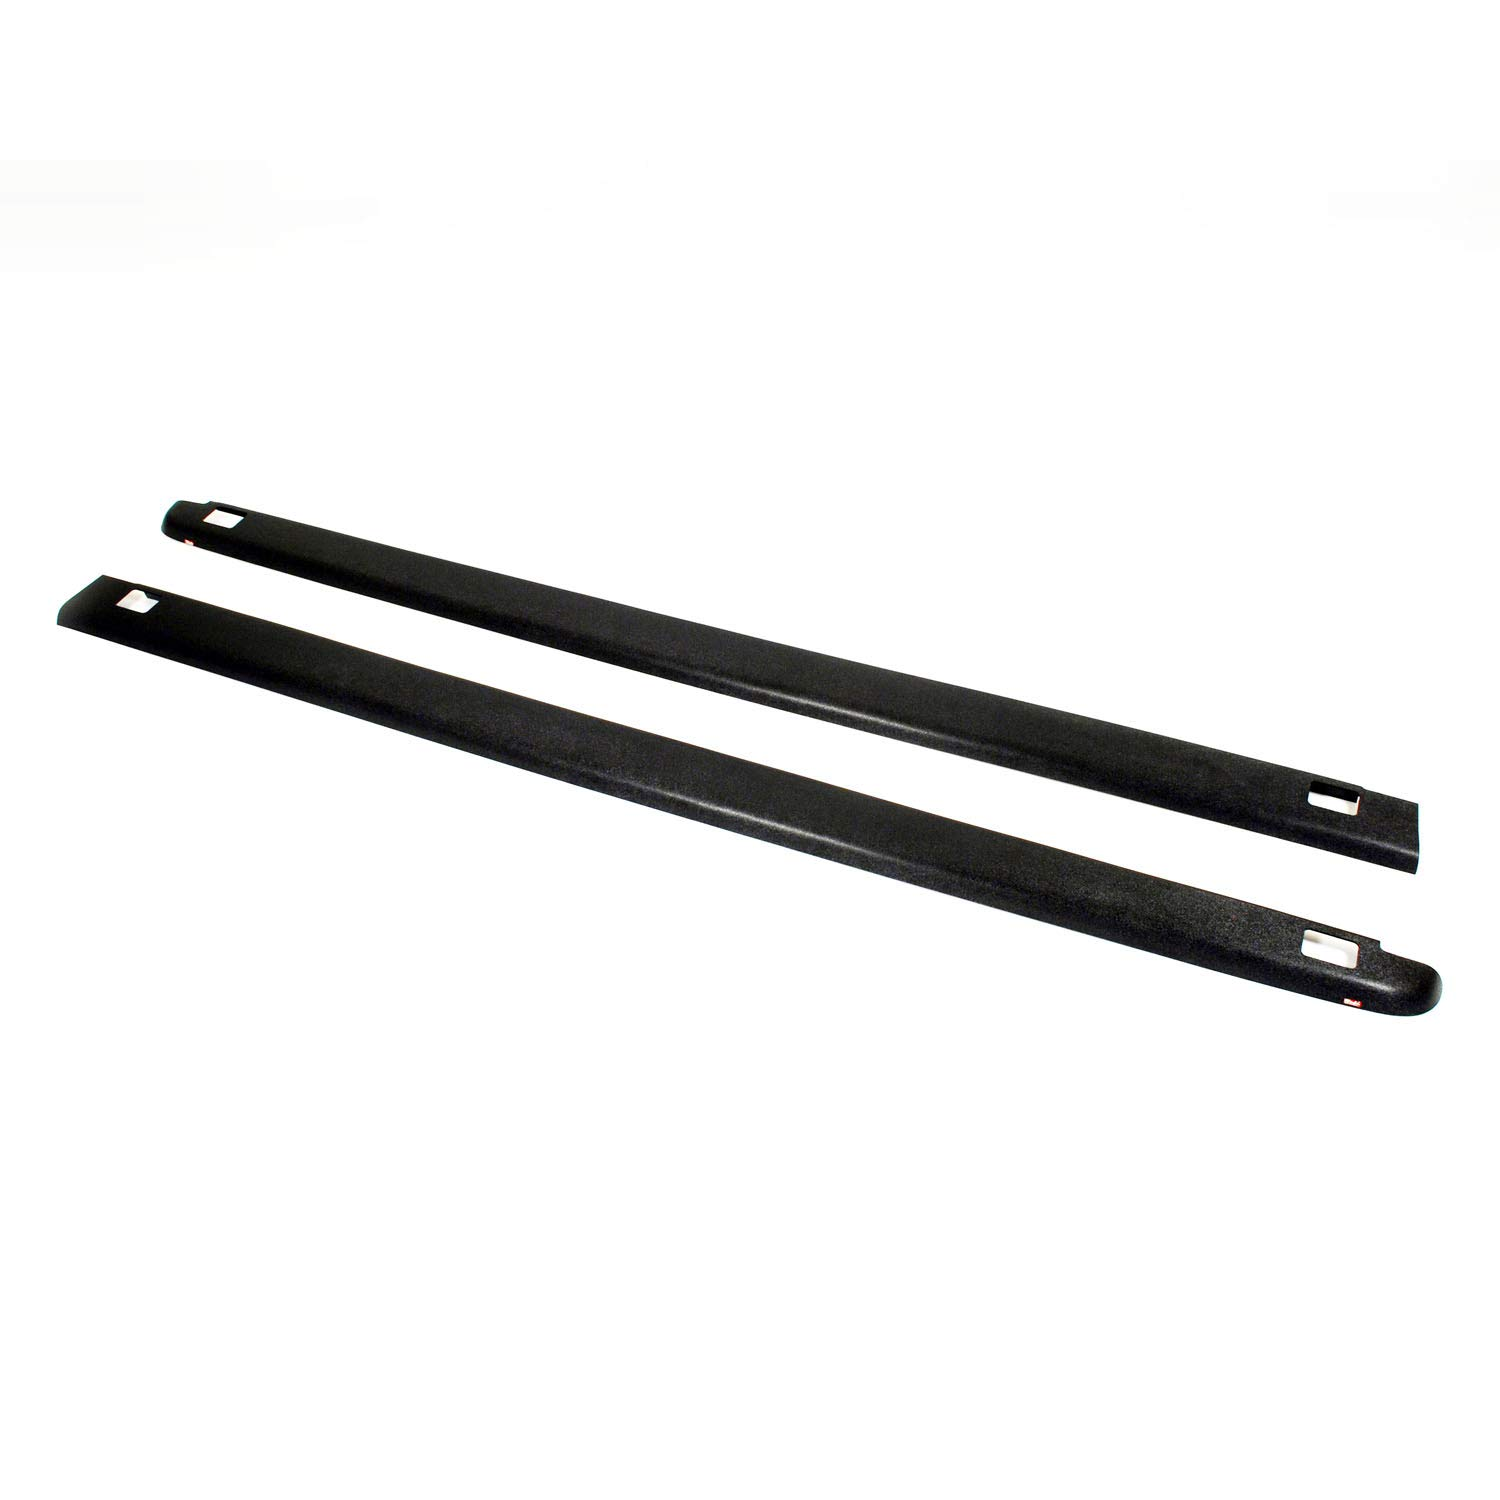 Wade 72-41147 Truck Bed Rail Caps Black Smooth Finish with Stake Holes for 2007-2013 GMC Sierra 1500 & 2007-2014 GMC Sierra 2500HD 3500 (Except Dually) with 8ft bed (Set of 2) Westin